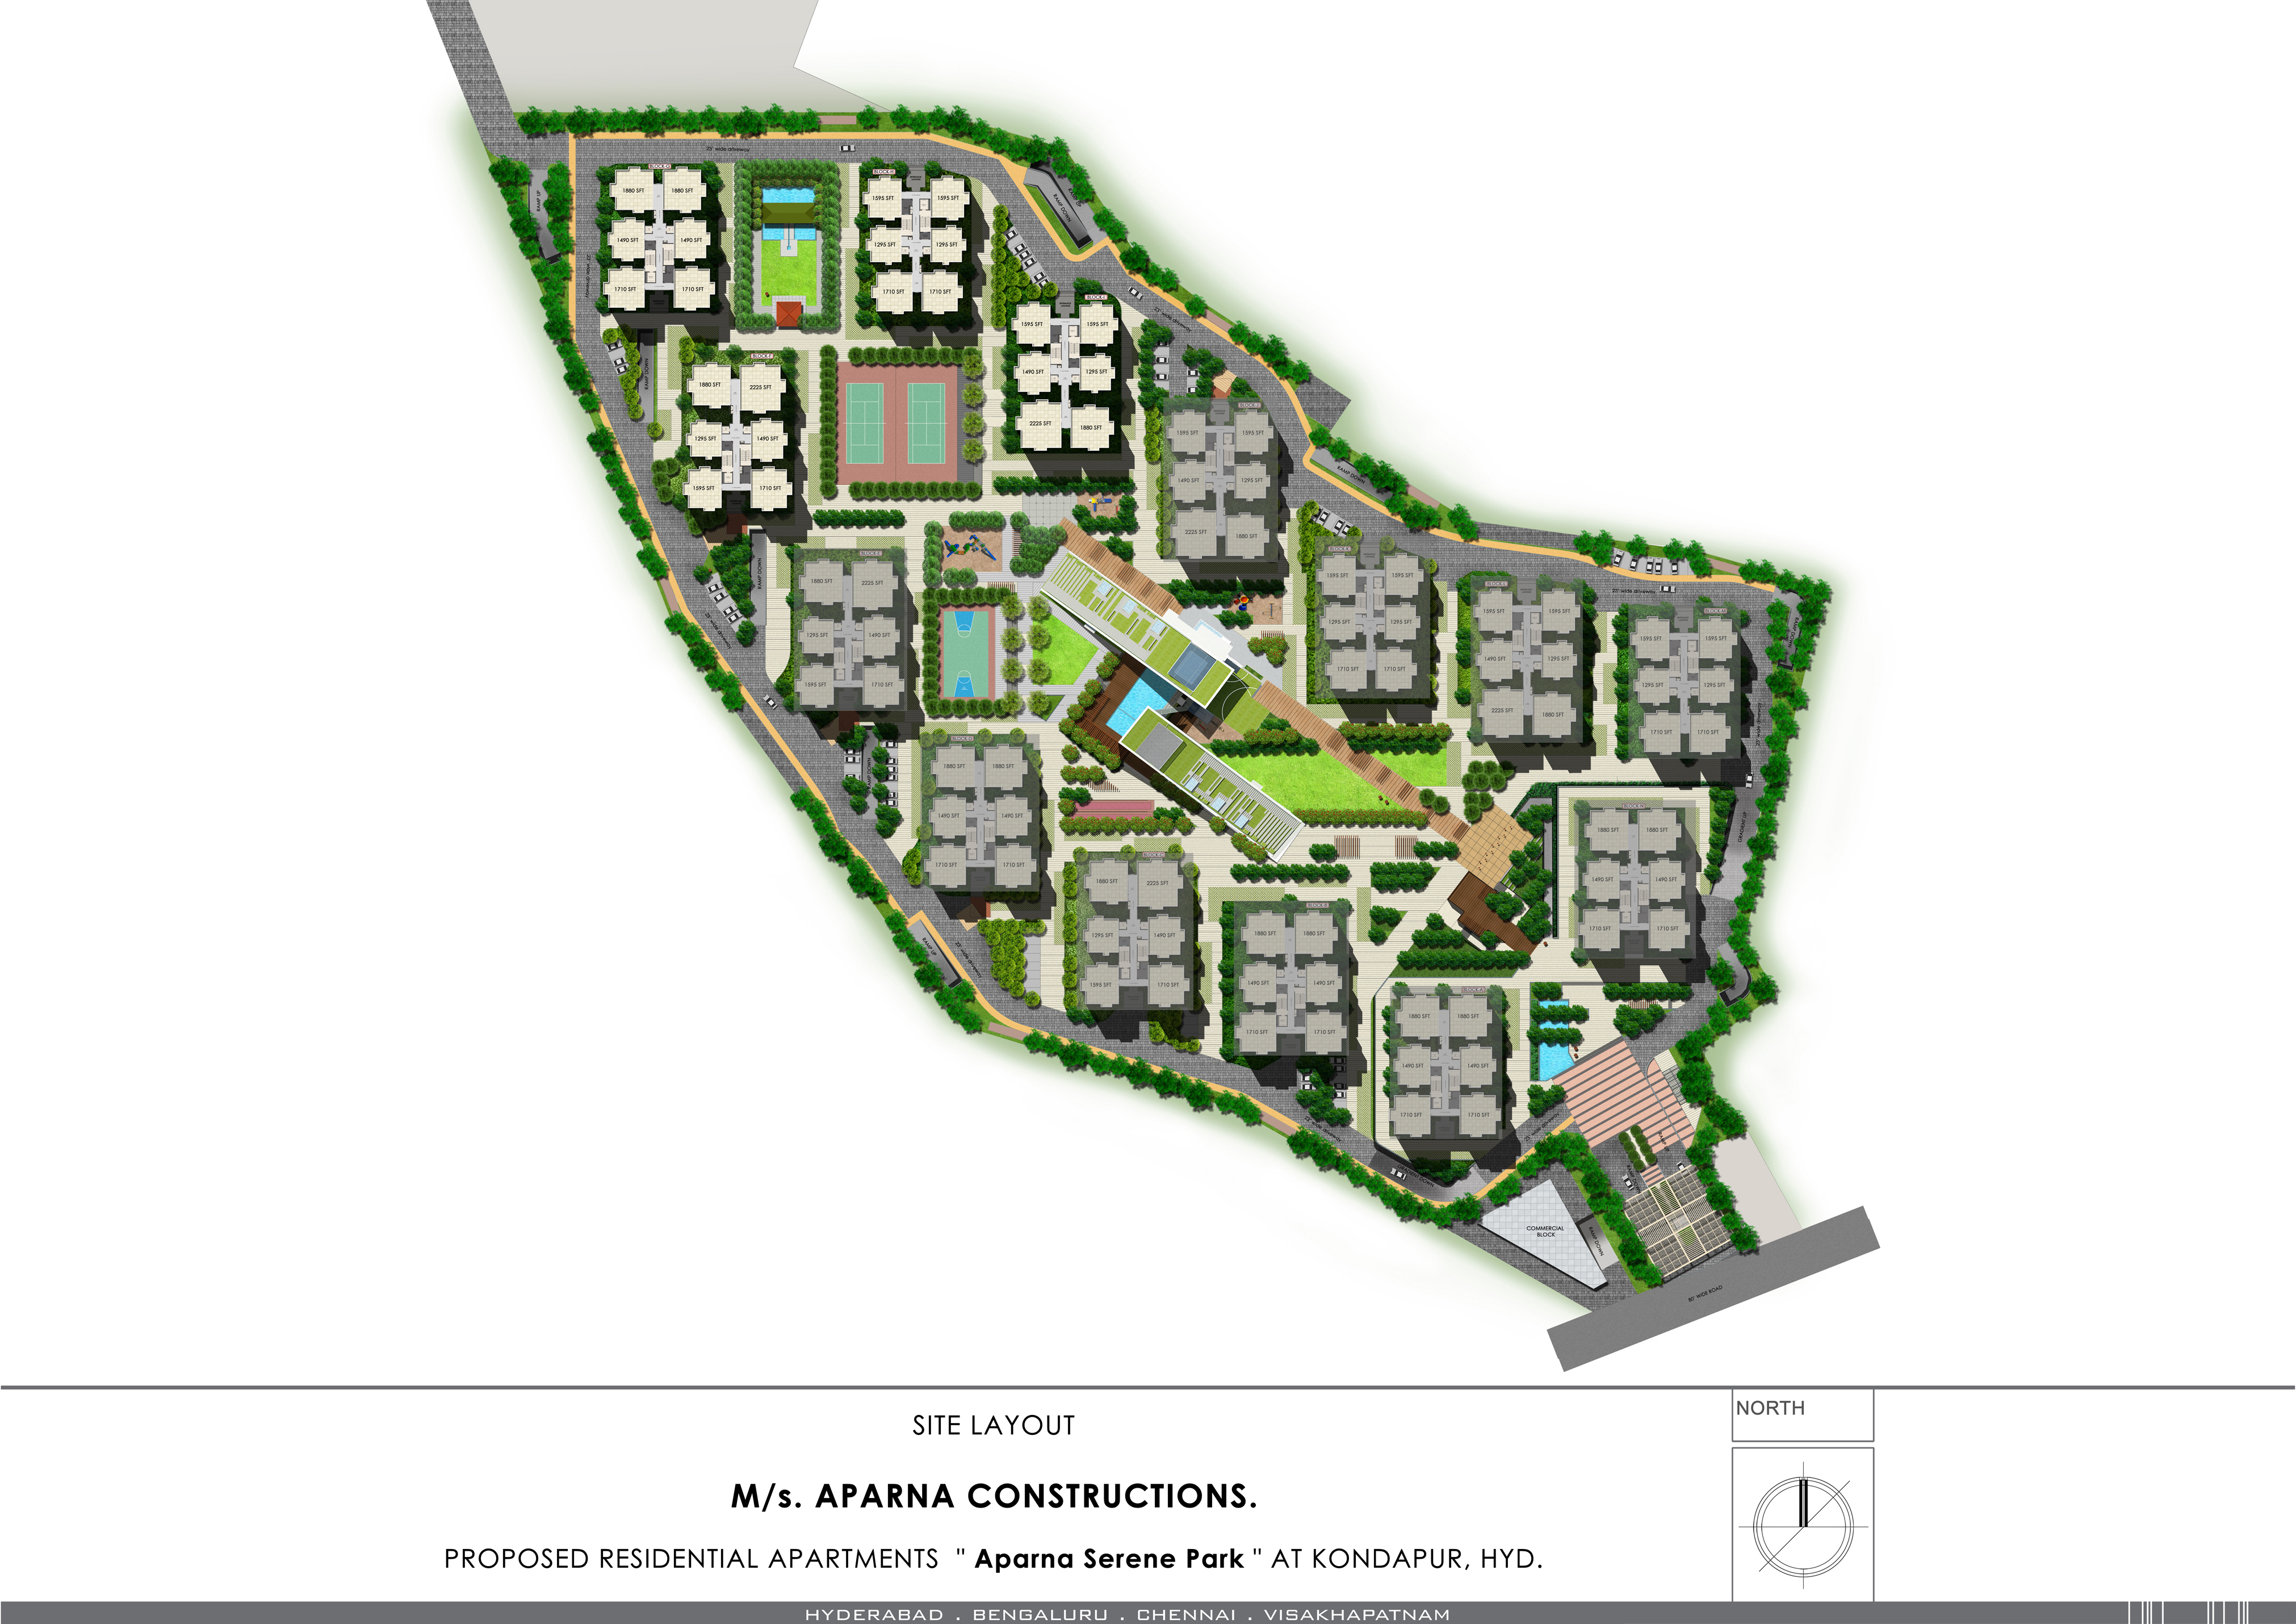 Gated Communities Apartments For Sale In Kondapur Aparna Serene Park Shutters Home Depot Free Download Wiring Diagram Schematic Gachibowli Site Layout 2